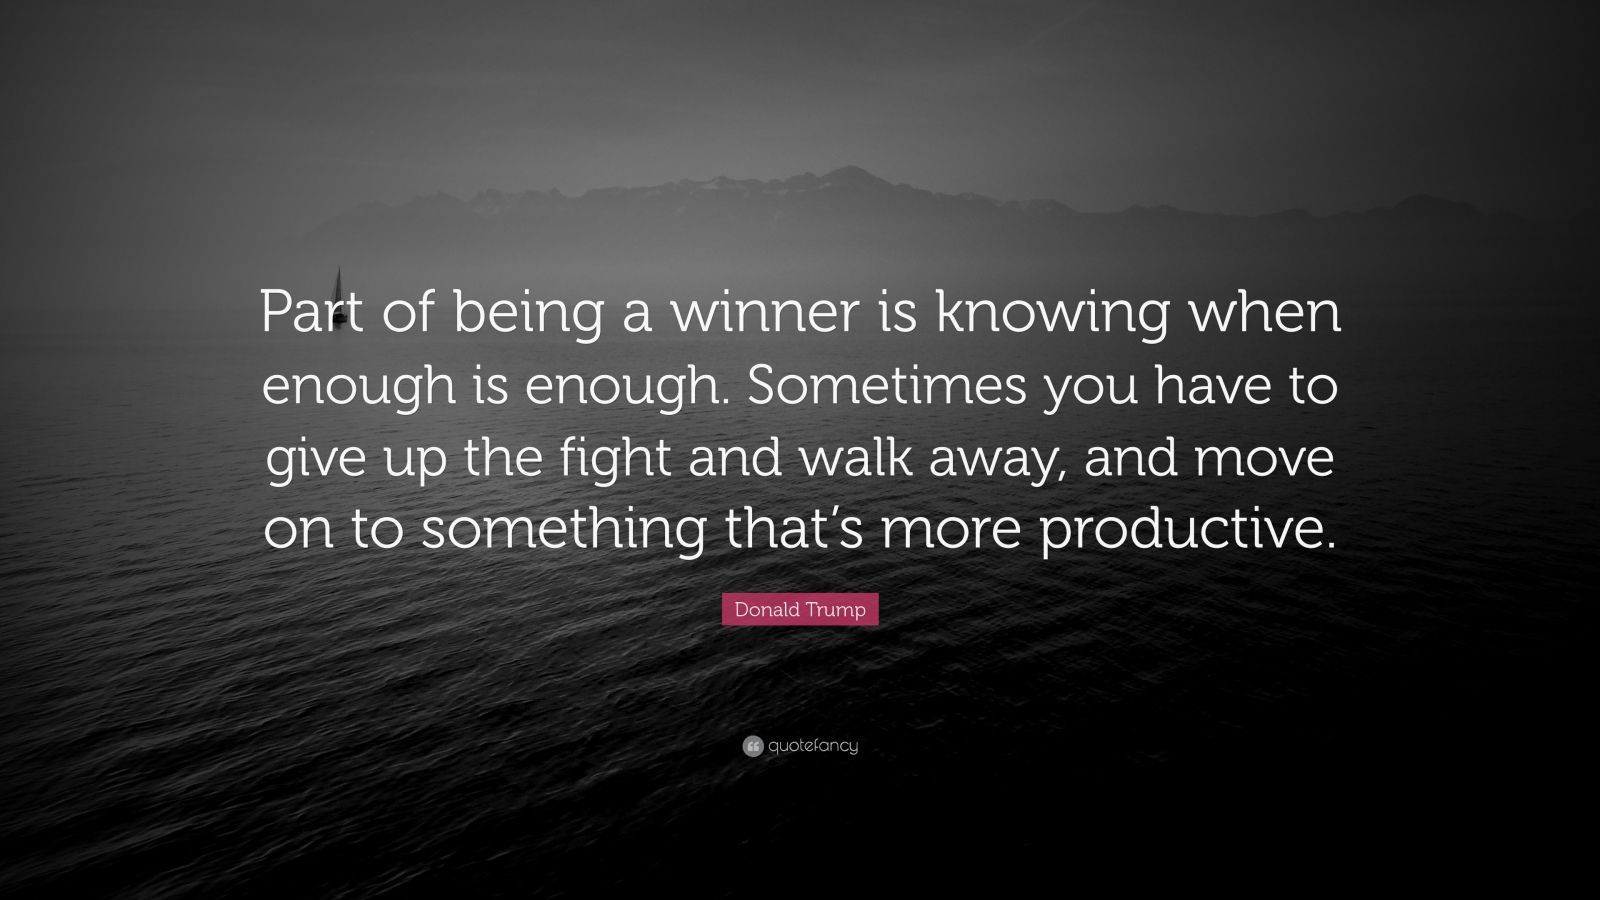 """Donald Trump Quote: """"Part of being a winner is knowing when enough is enough. Sometimes you have to give up the fight and walk away, and move on to something that's more productive."""""""